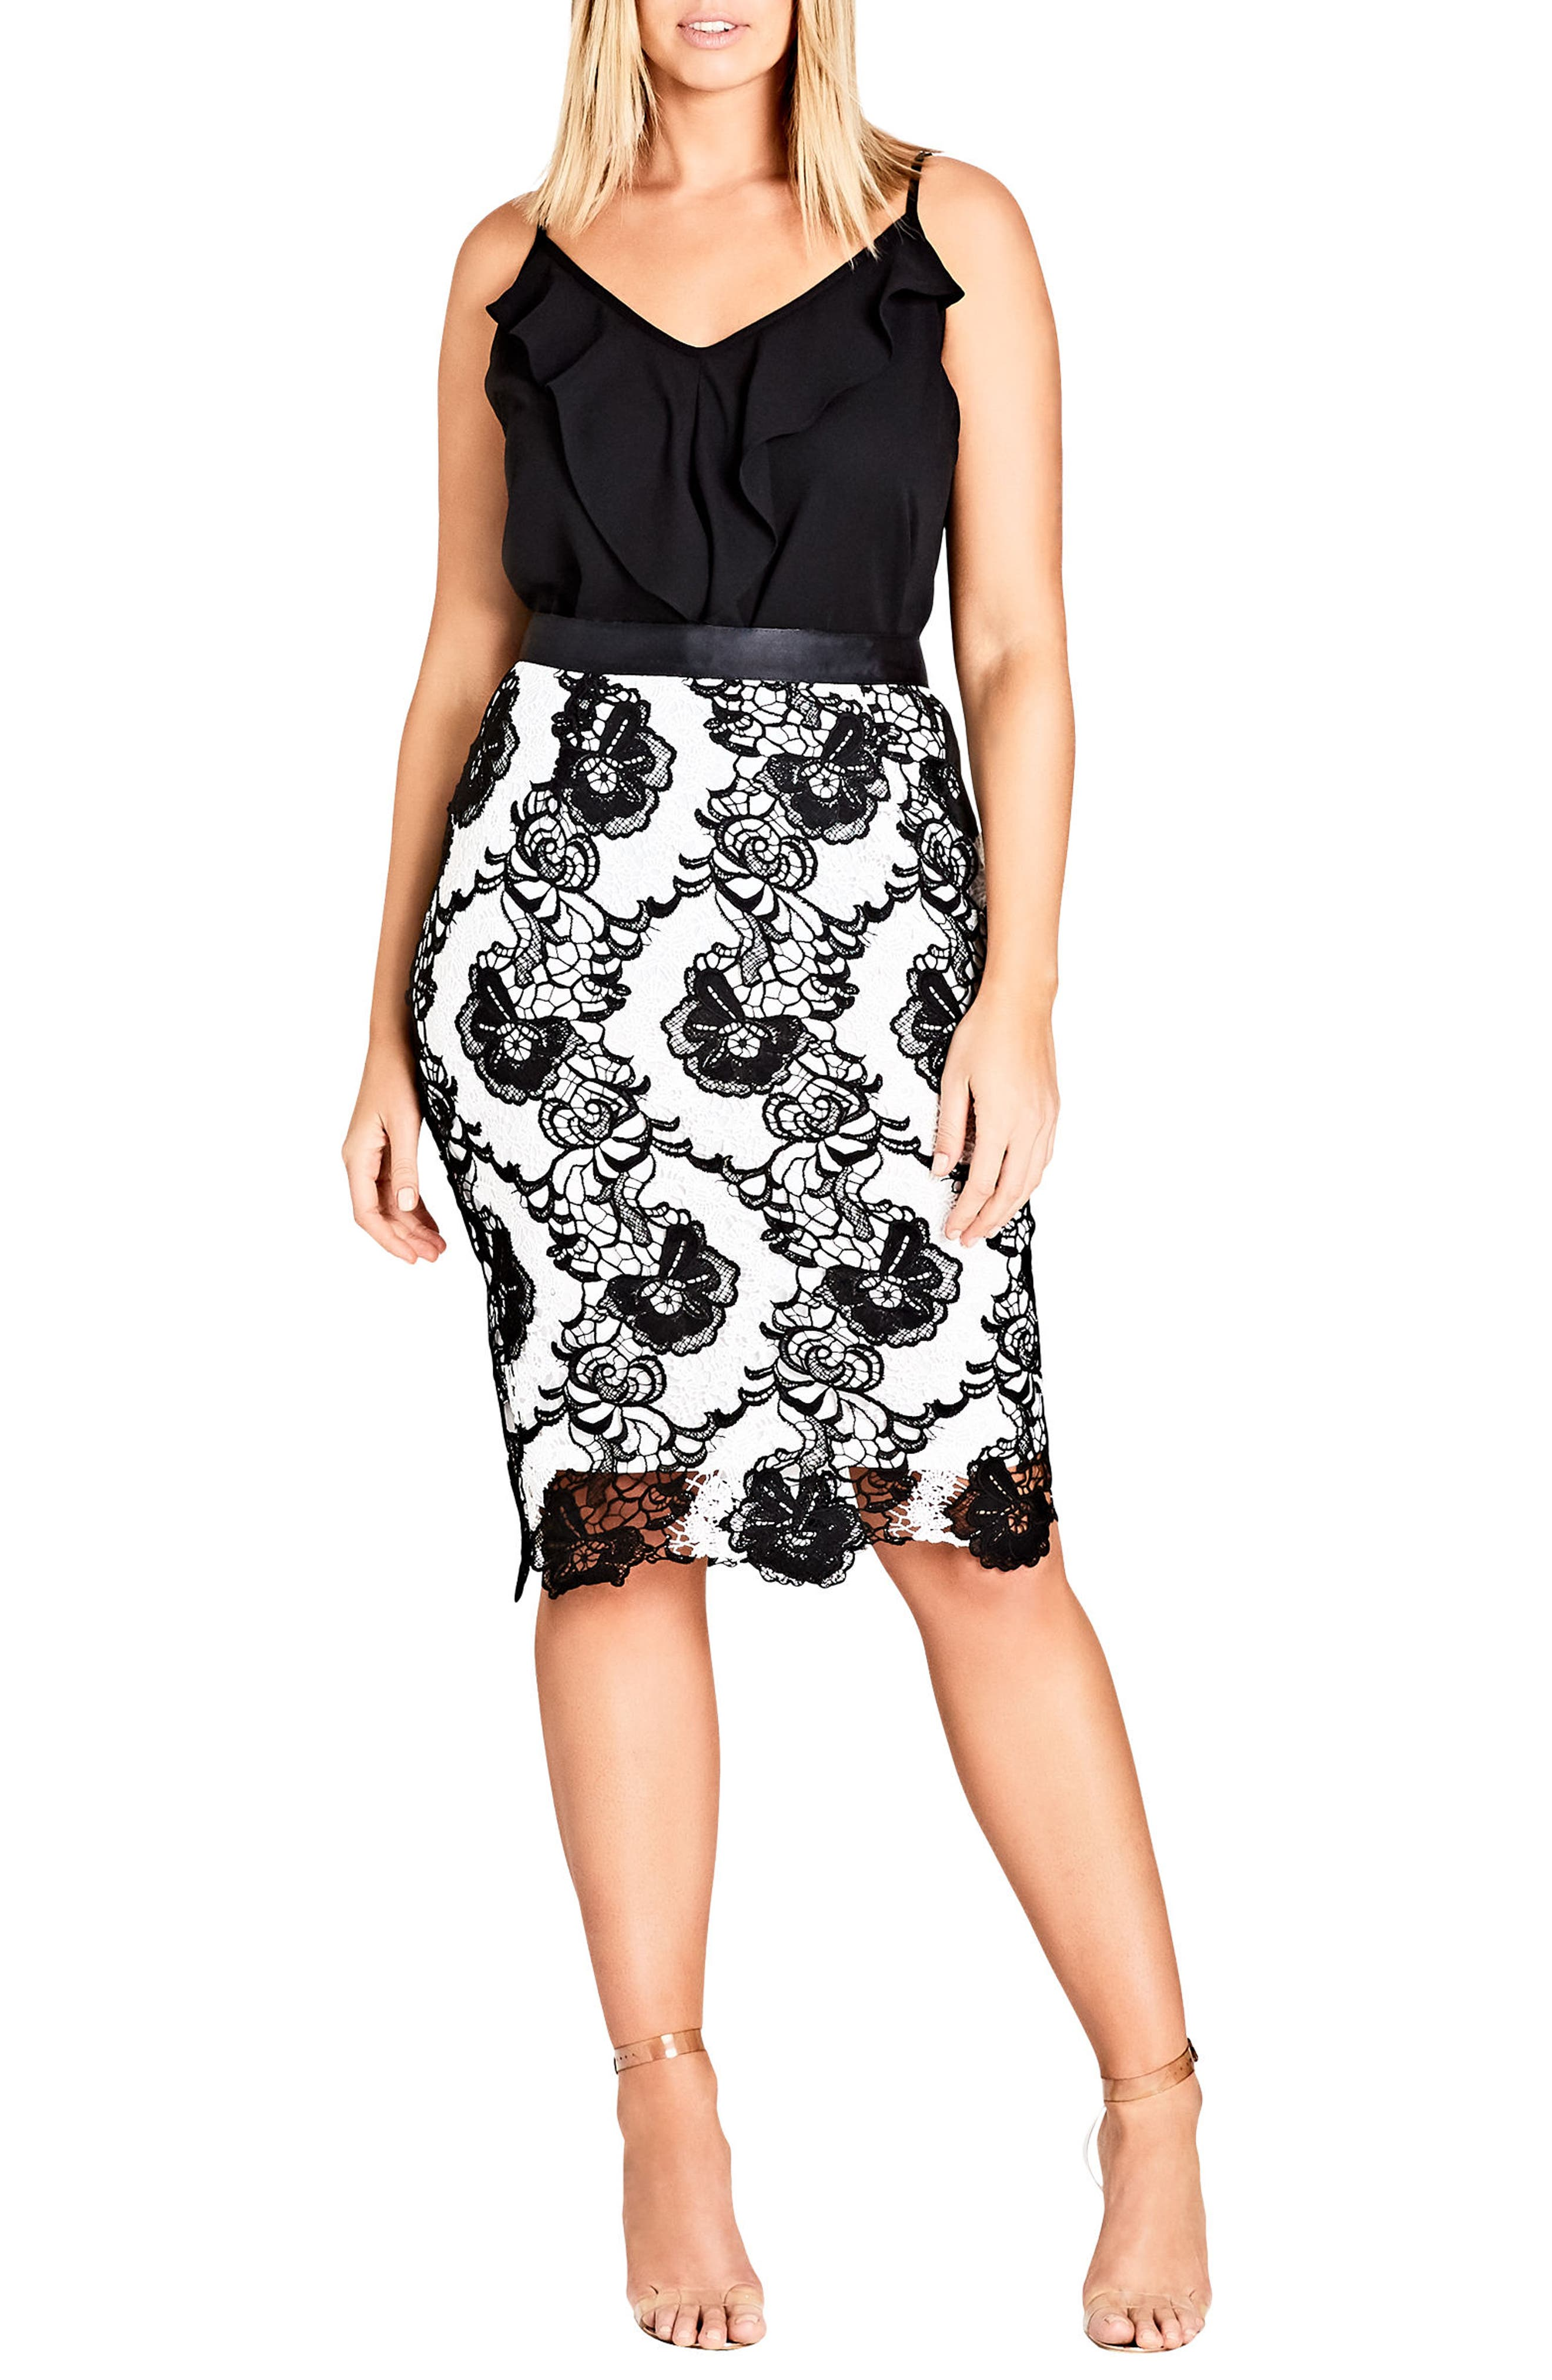 Cha Cha Floral Embroidered Skirt,                         Main,                         color,